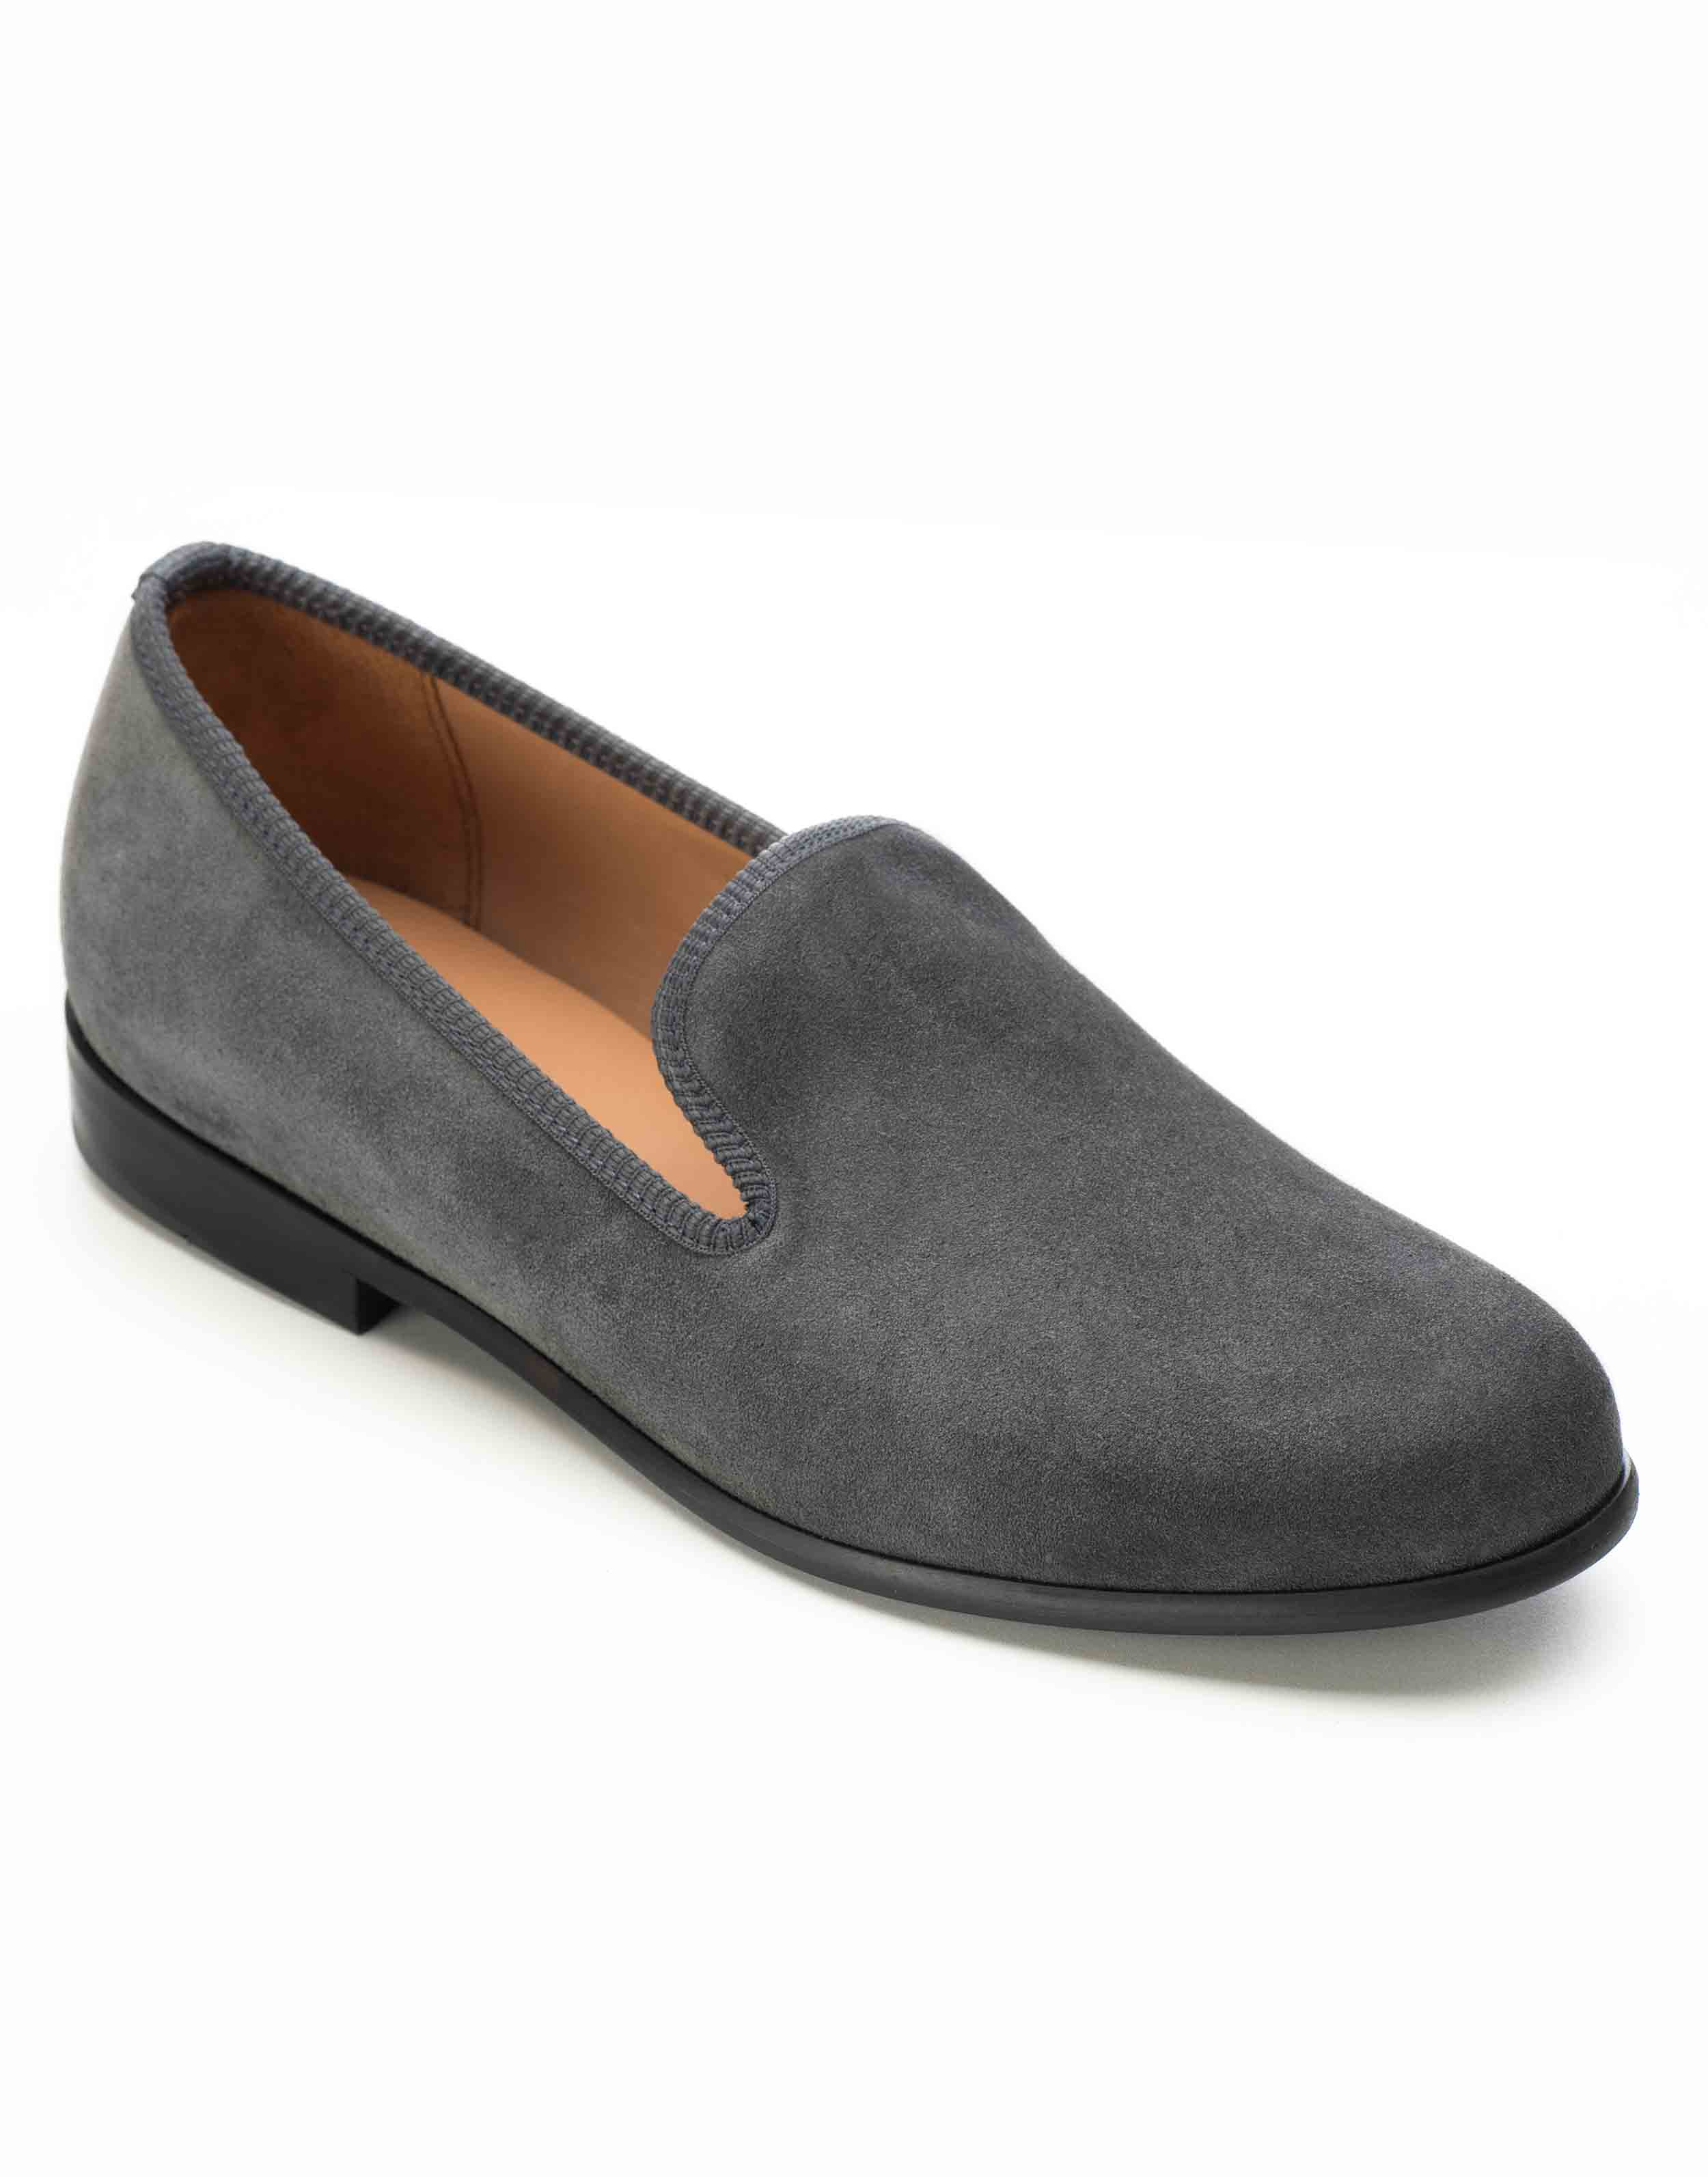 GREY SUEDE LOAFERS2